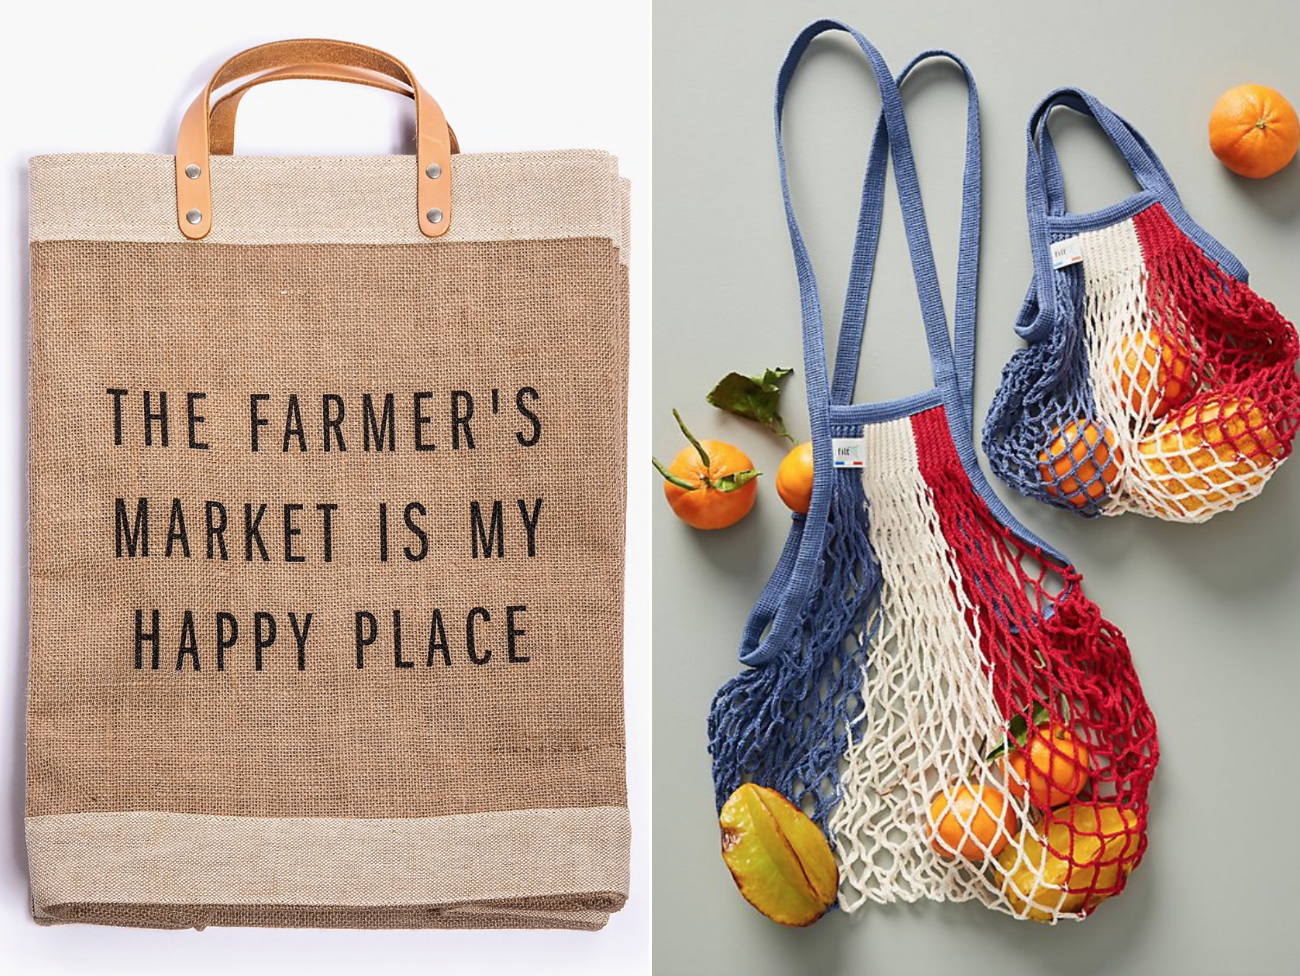 10 Practical, Stylish, Farmer's Market-Ready Tote Bags